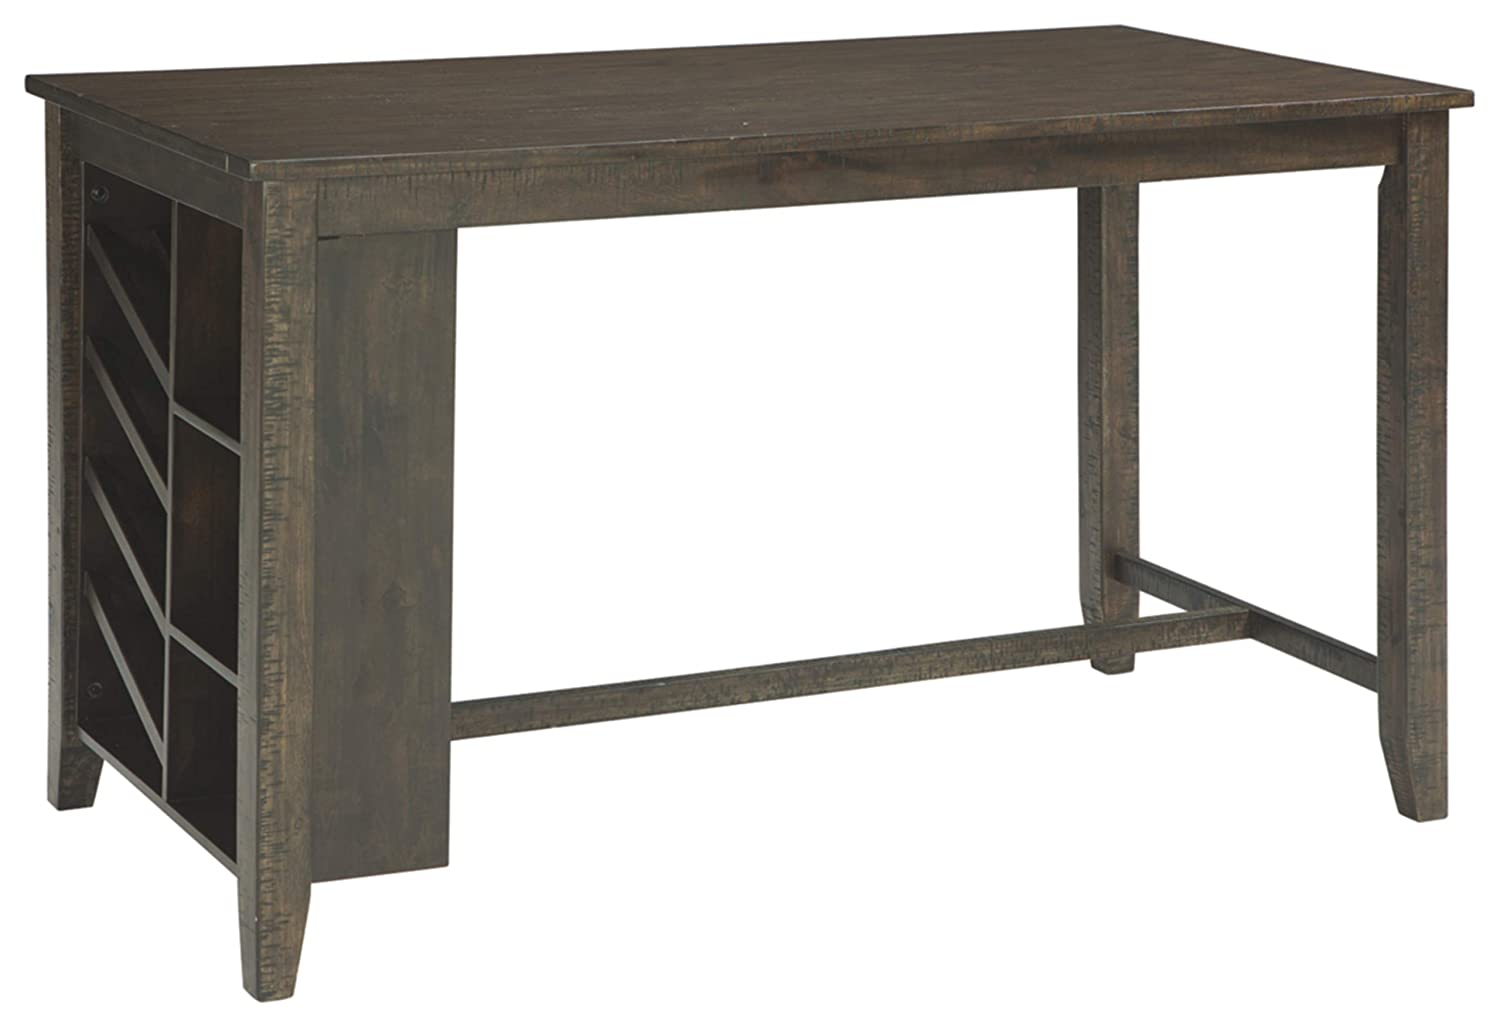 Signature Design by Ashley D397-32 Rokane Counter Height Dining Room Table Brown